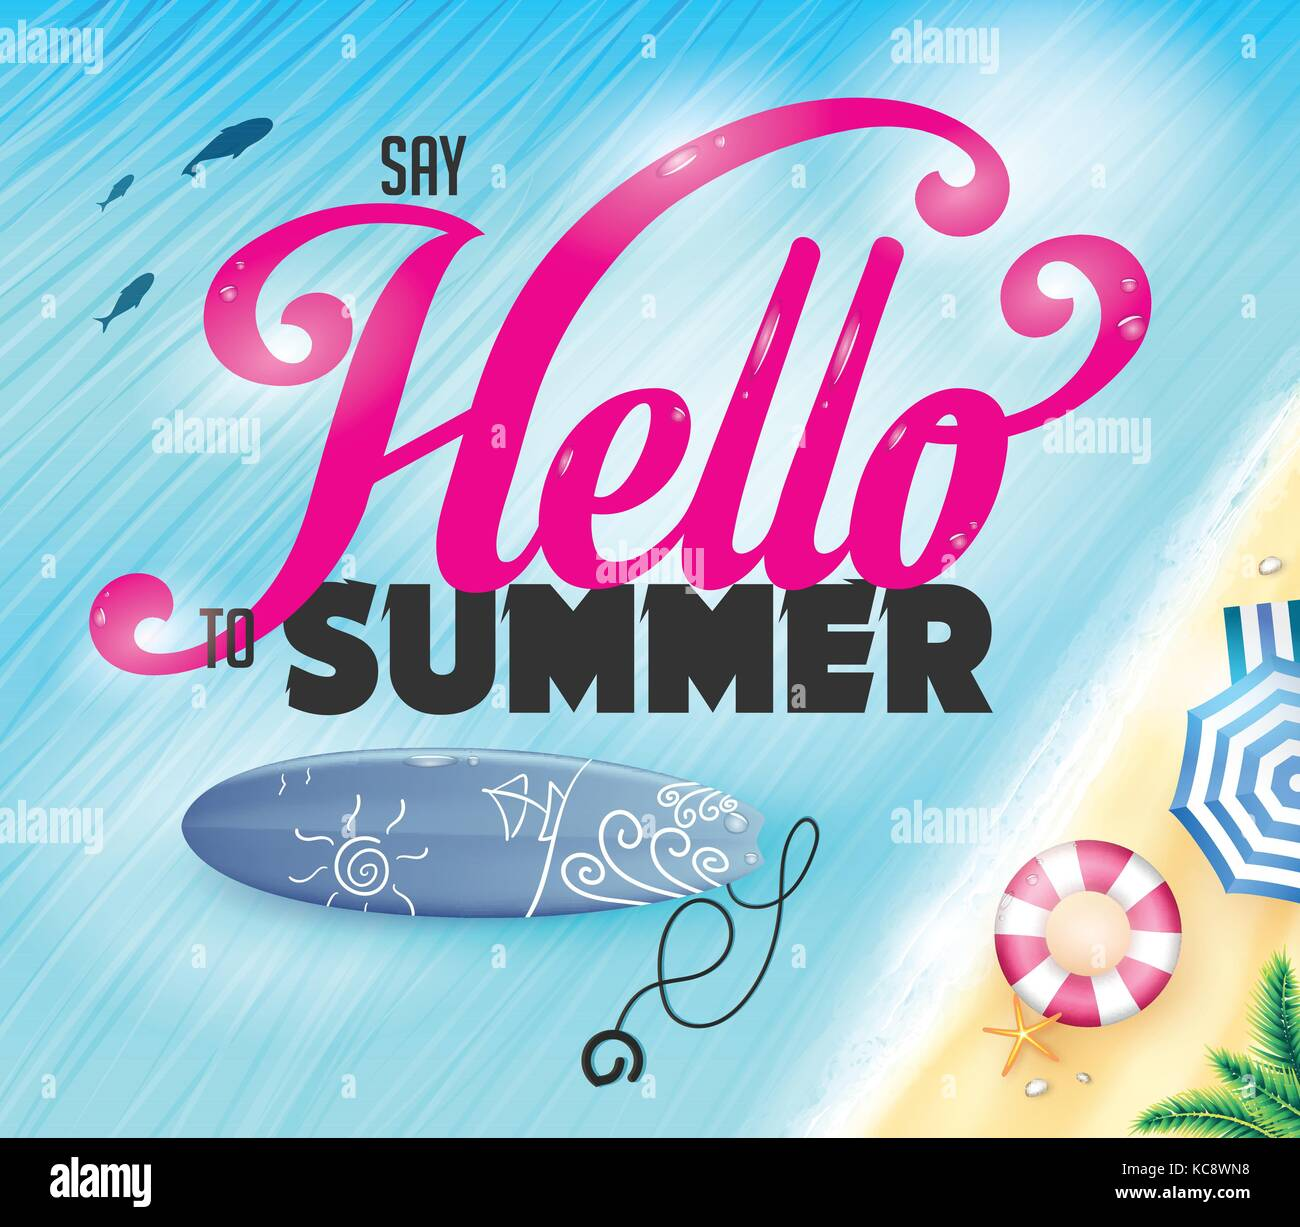 Say Hello To Summer Lettering On Top View Of The Ocean with Fish And Surfboard Near The Shore Vector Illustration - Stock Vector